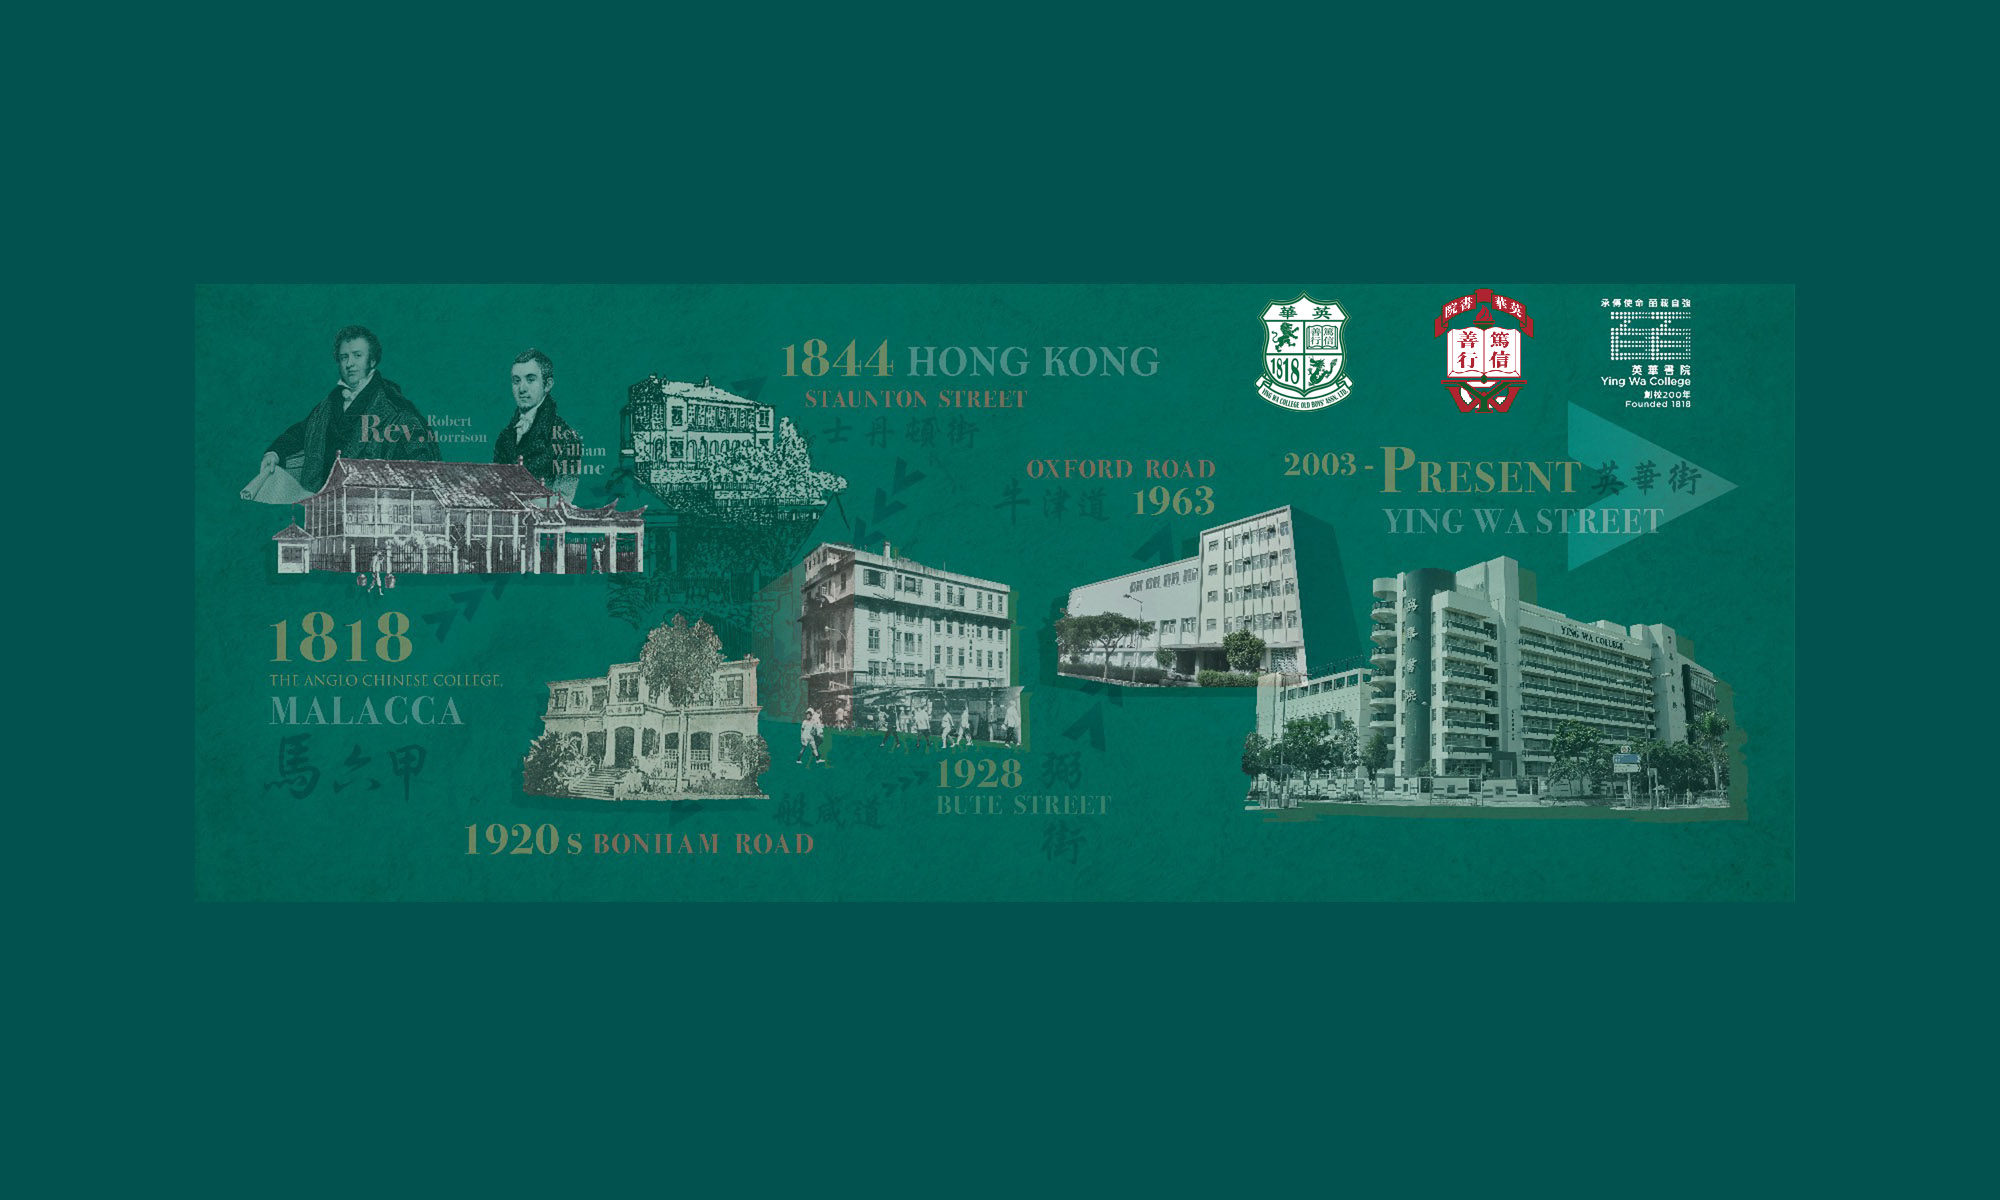 Ying Wa College Old Boys' Association